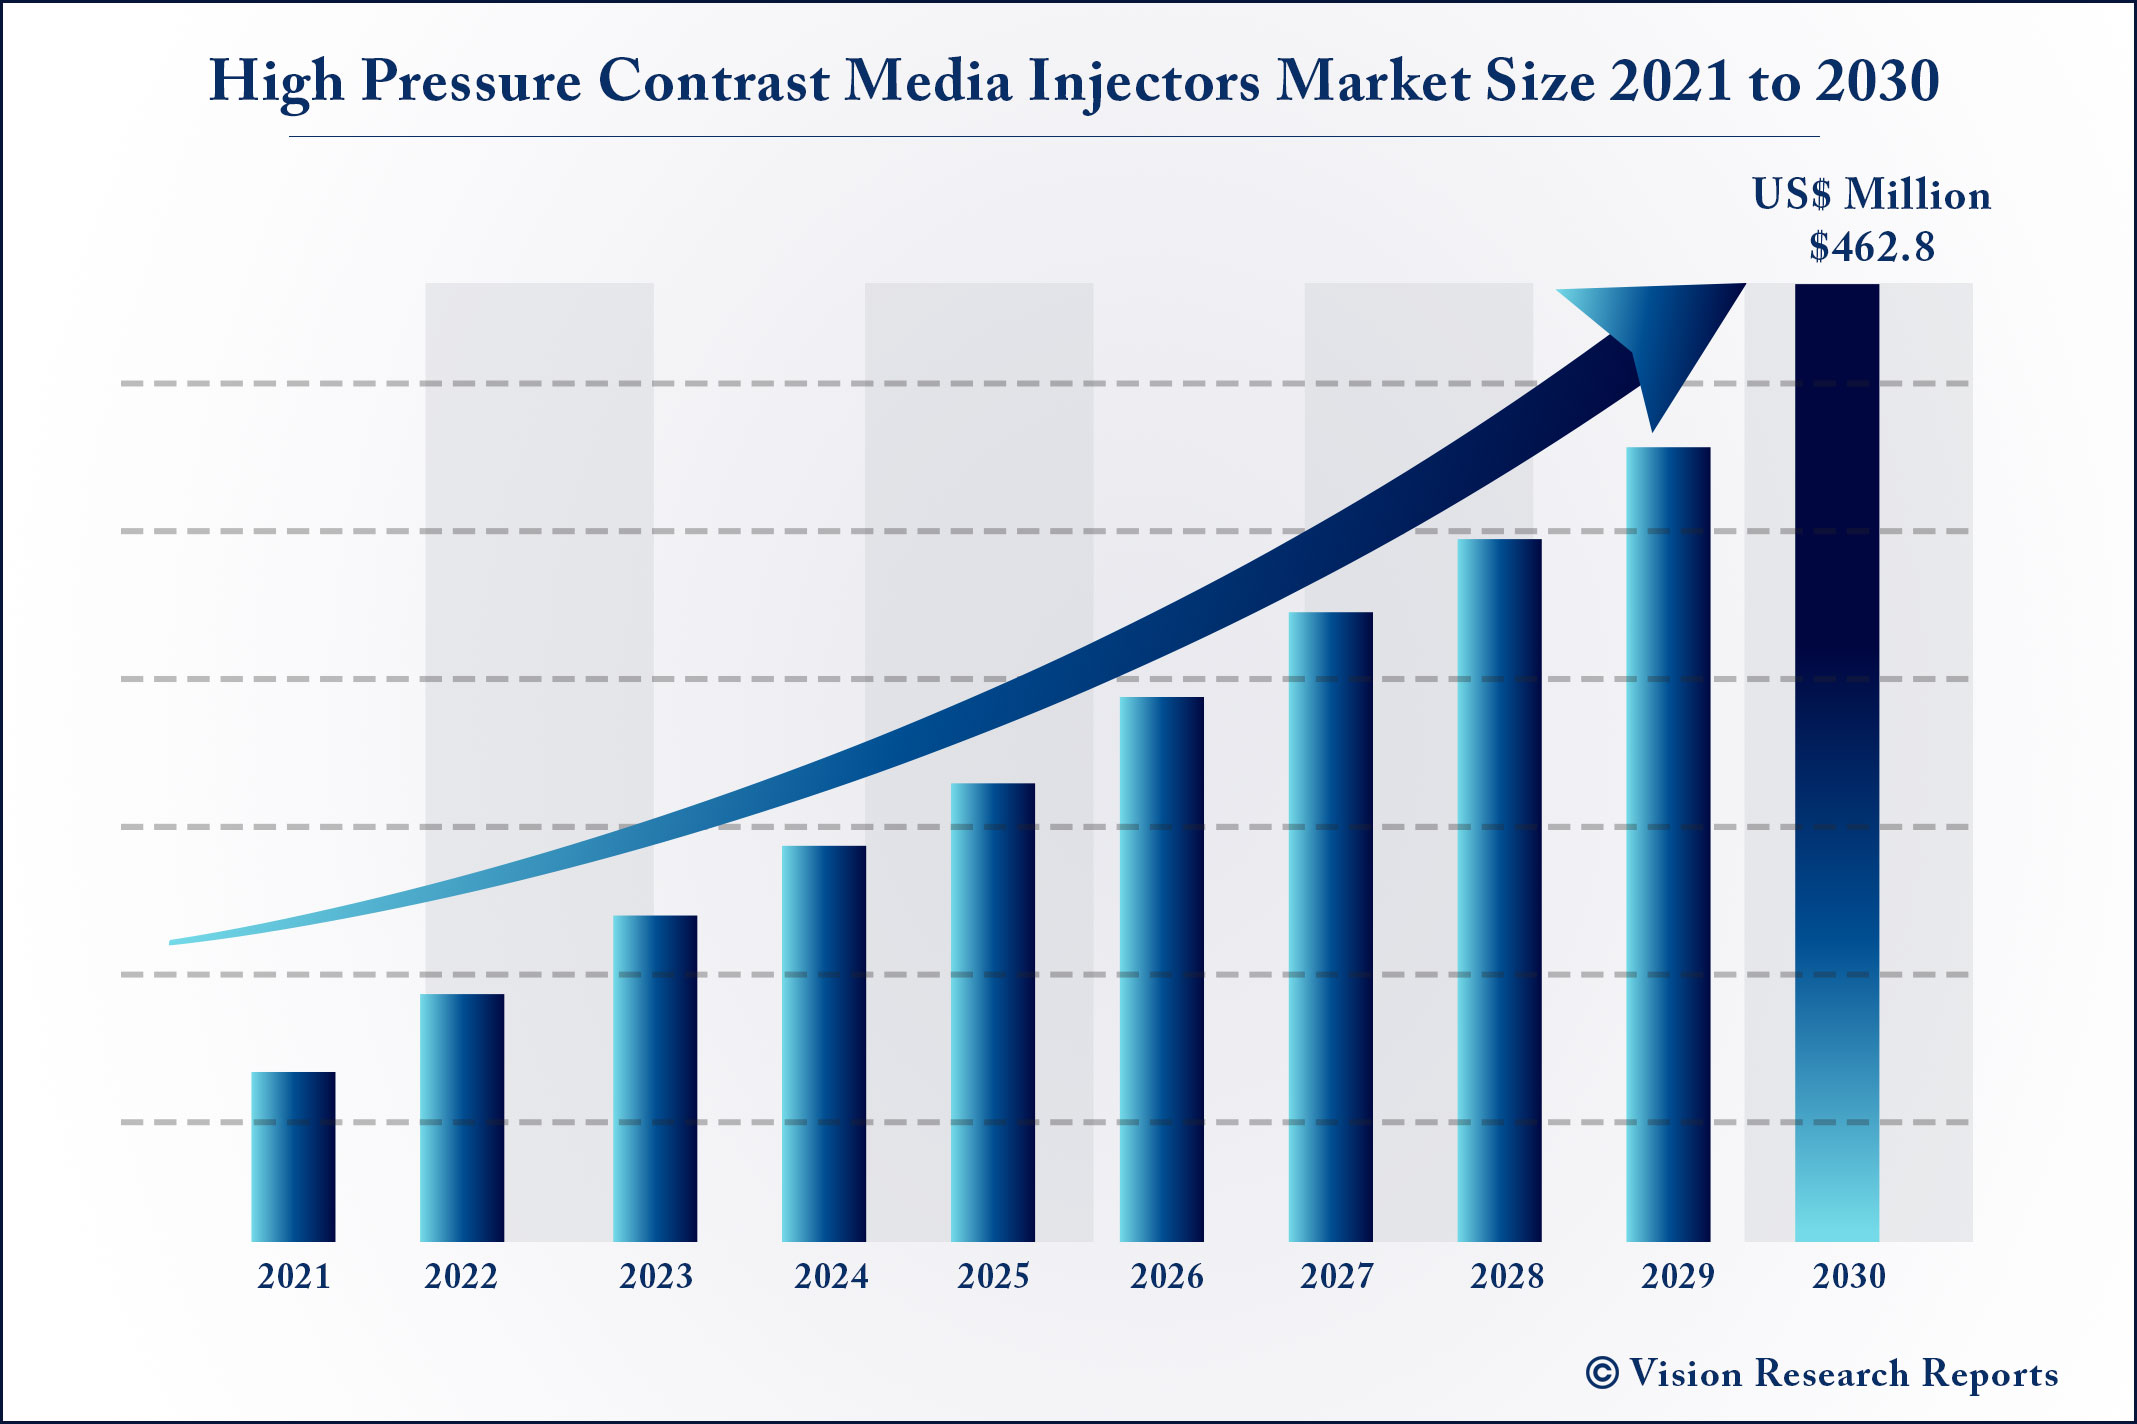 High Pressure Contrast Media Injectors Market Size 2021 to 2030